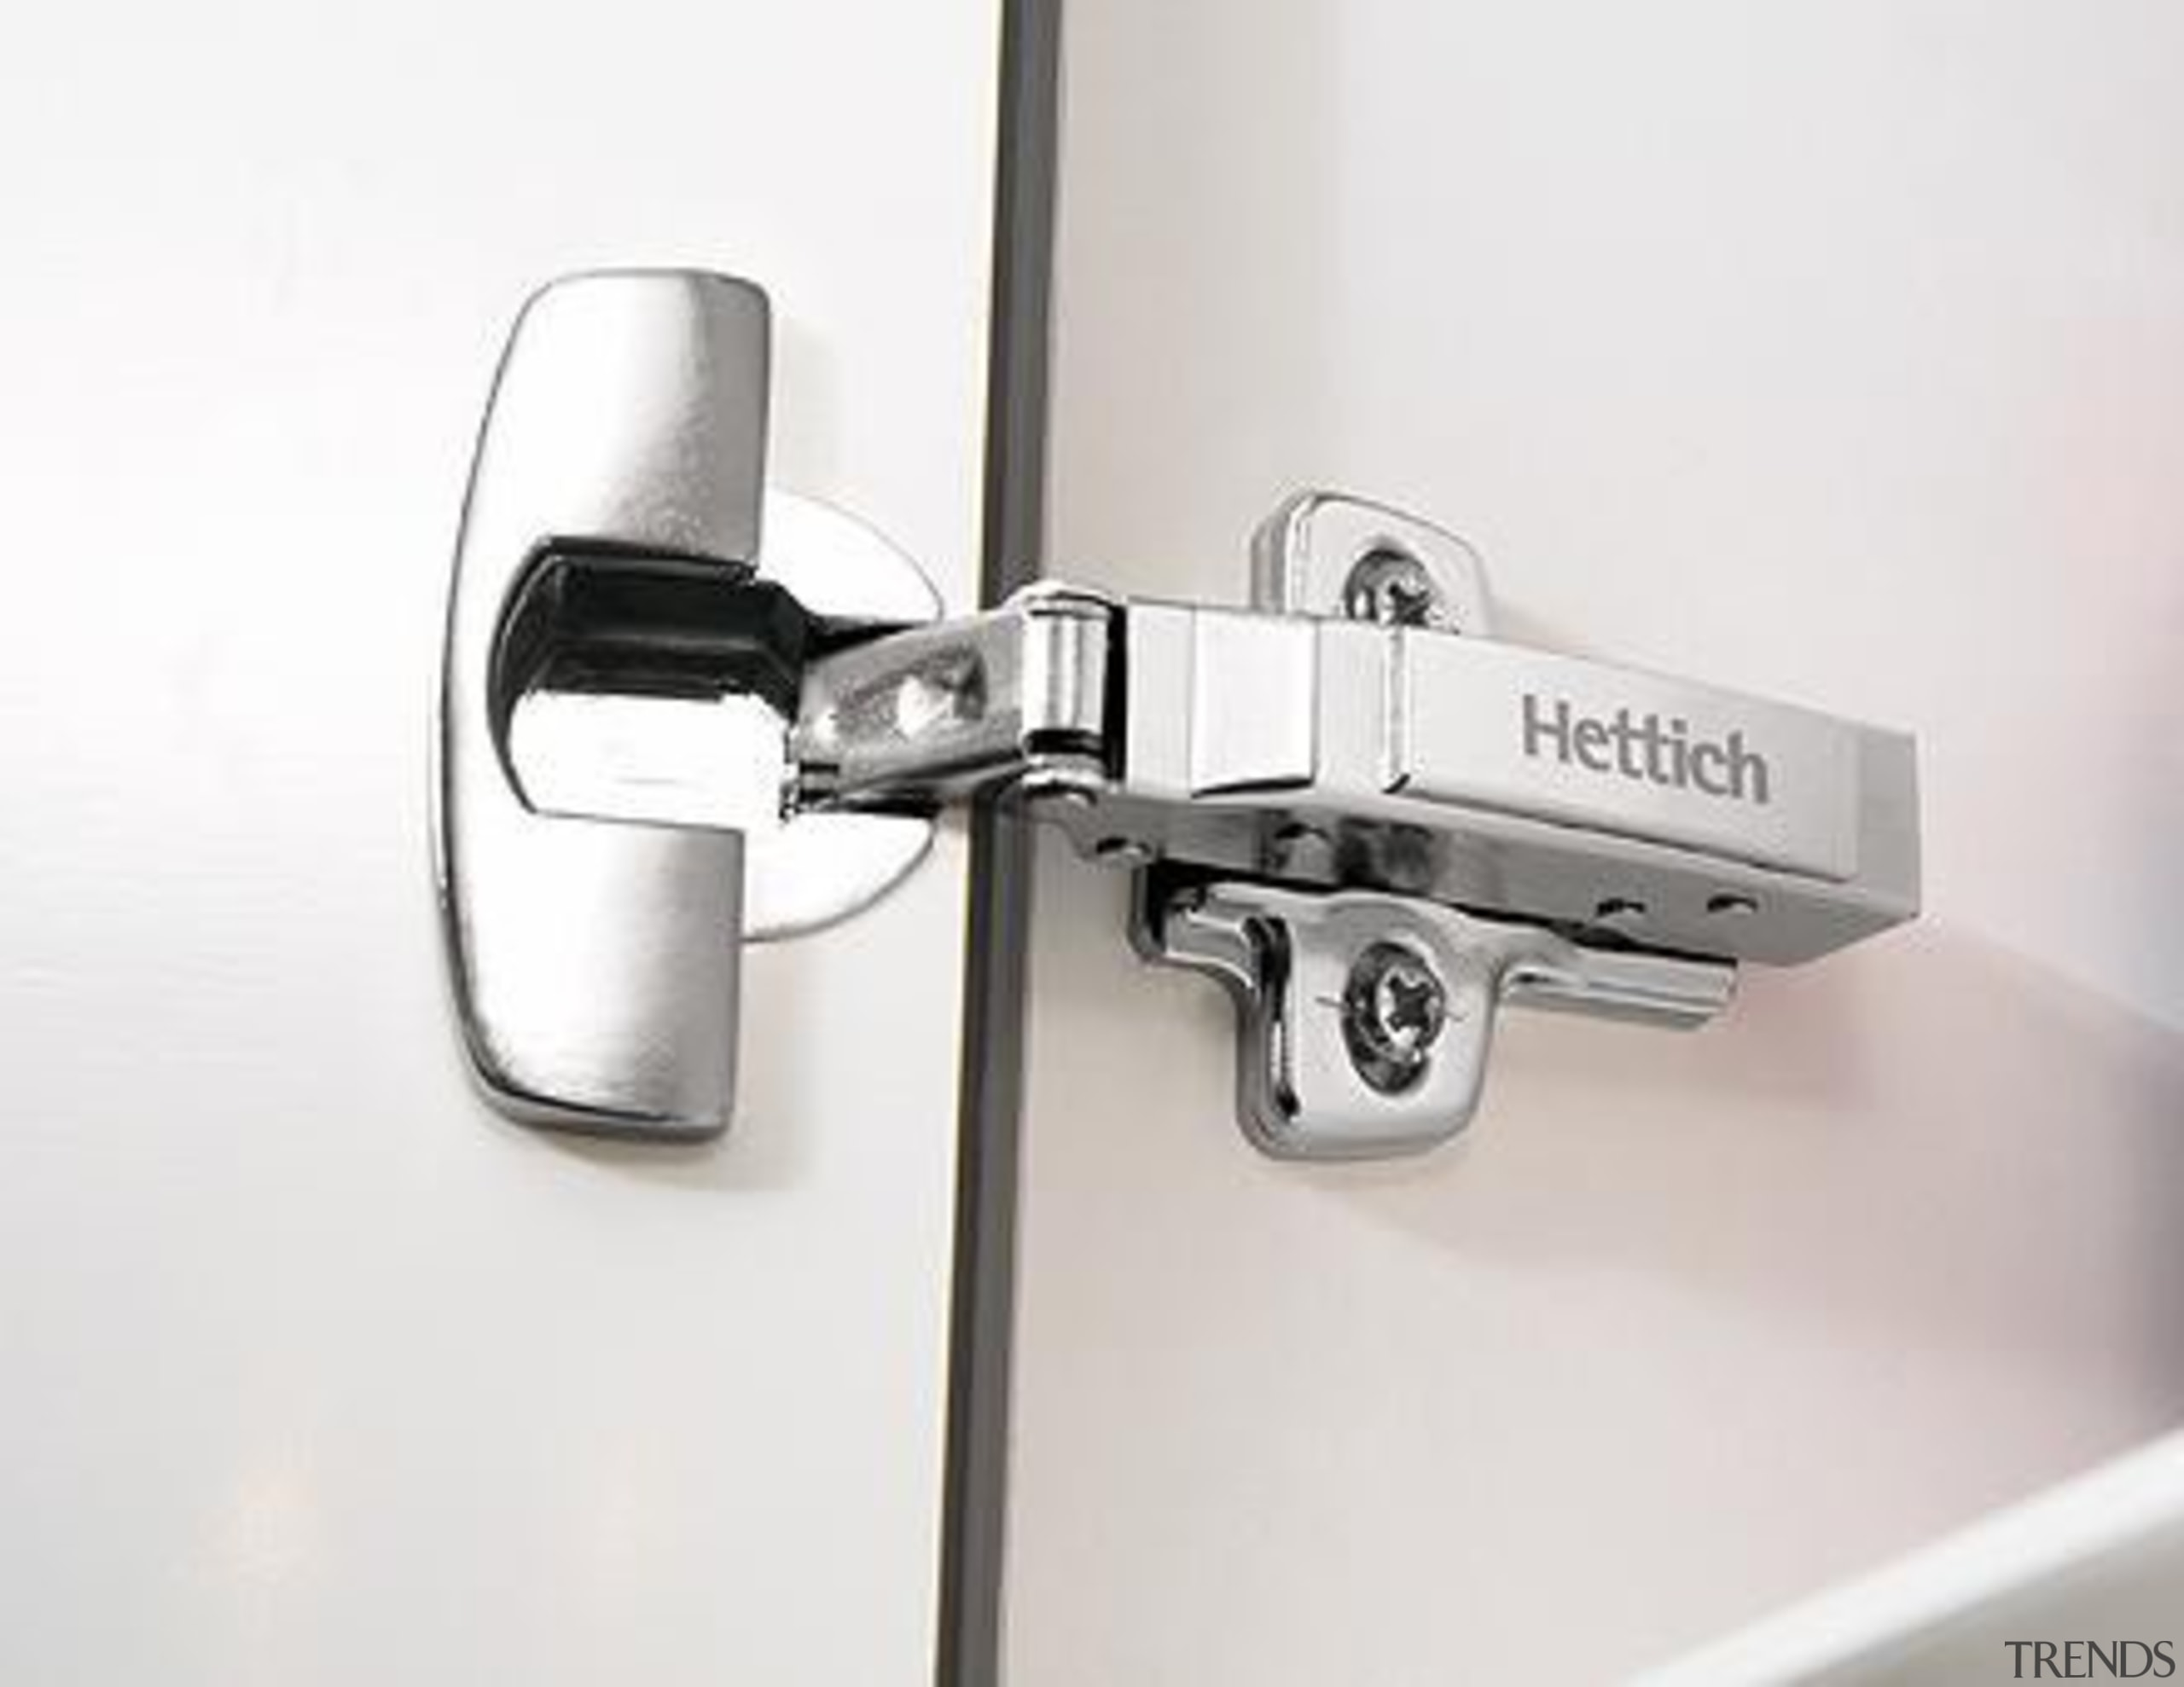 Sensys marks the latest generation in hinge technology hardware, hardware accessory, hinge, plumbing fixture, product, product design, tap, white